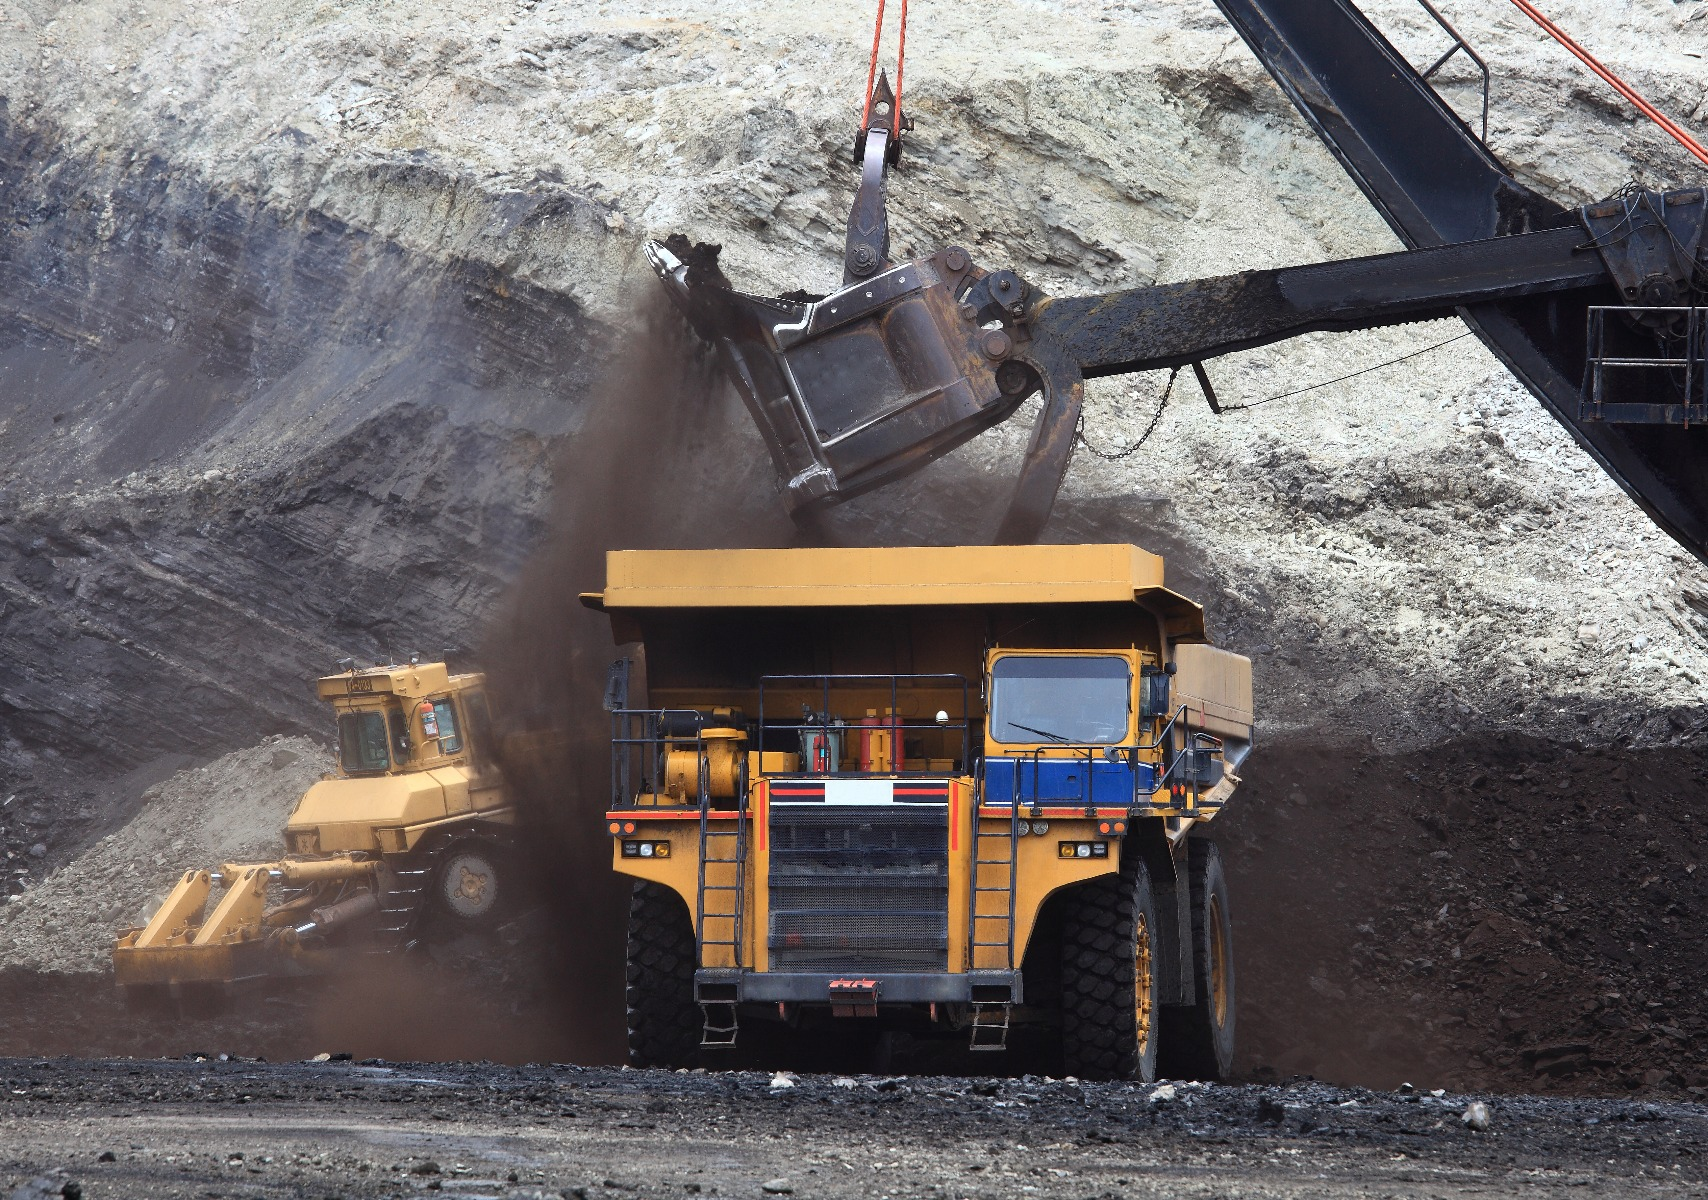 HYDAC solutions for mining applications